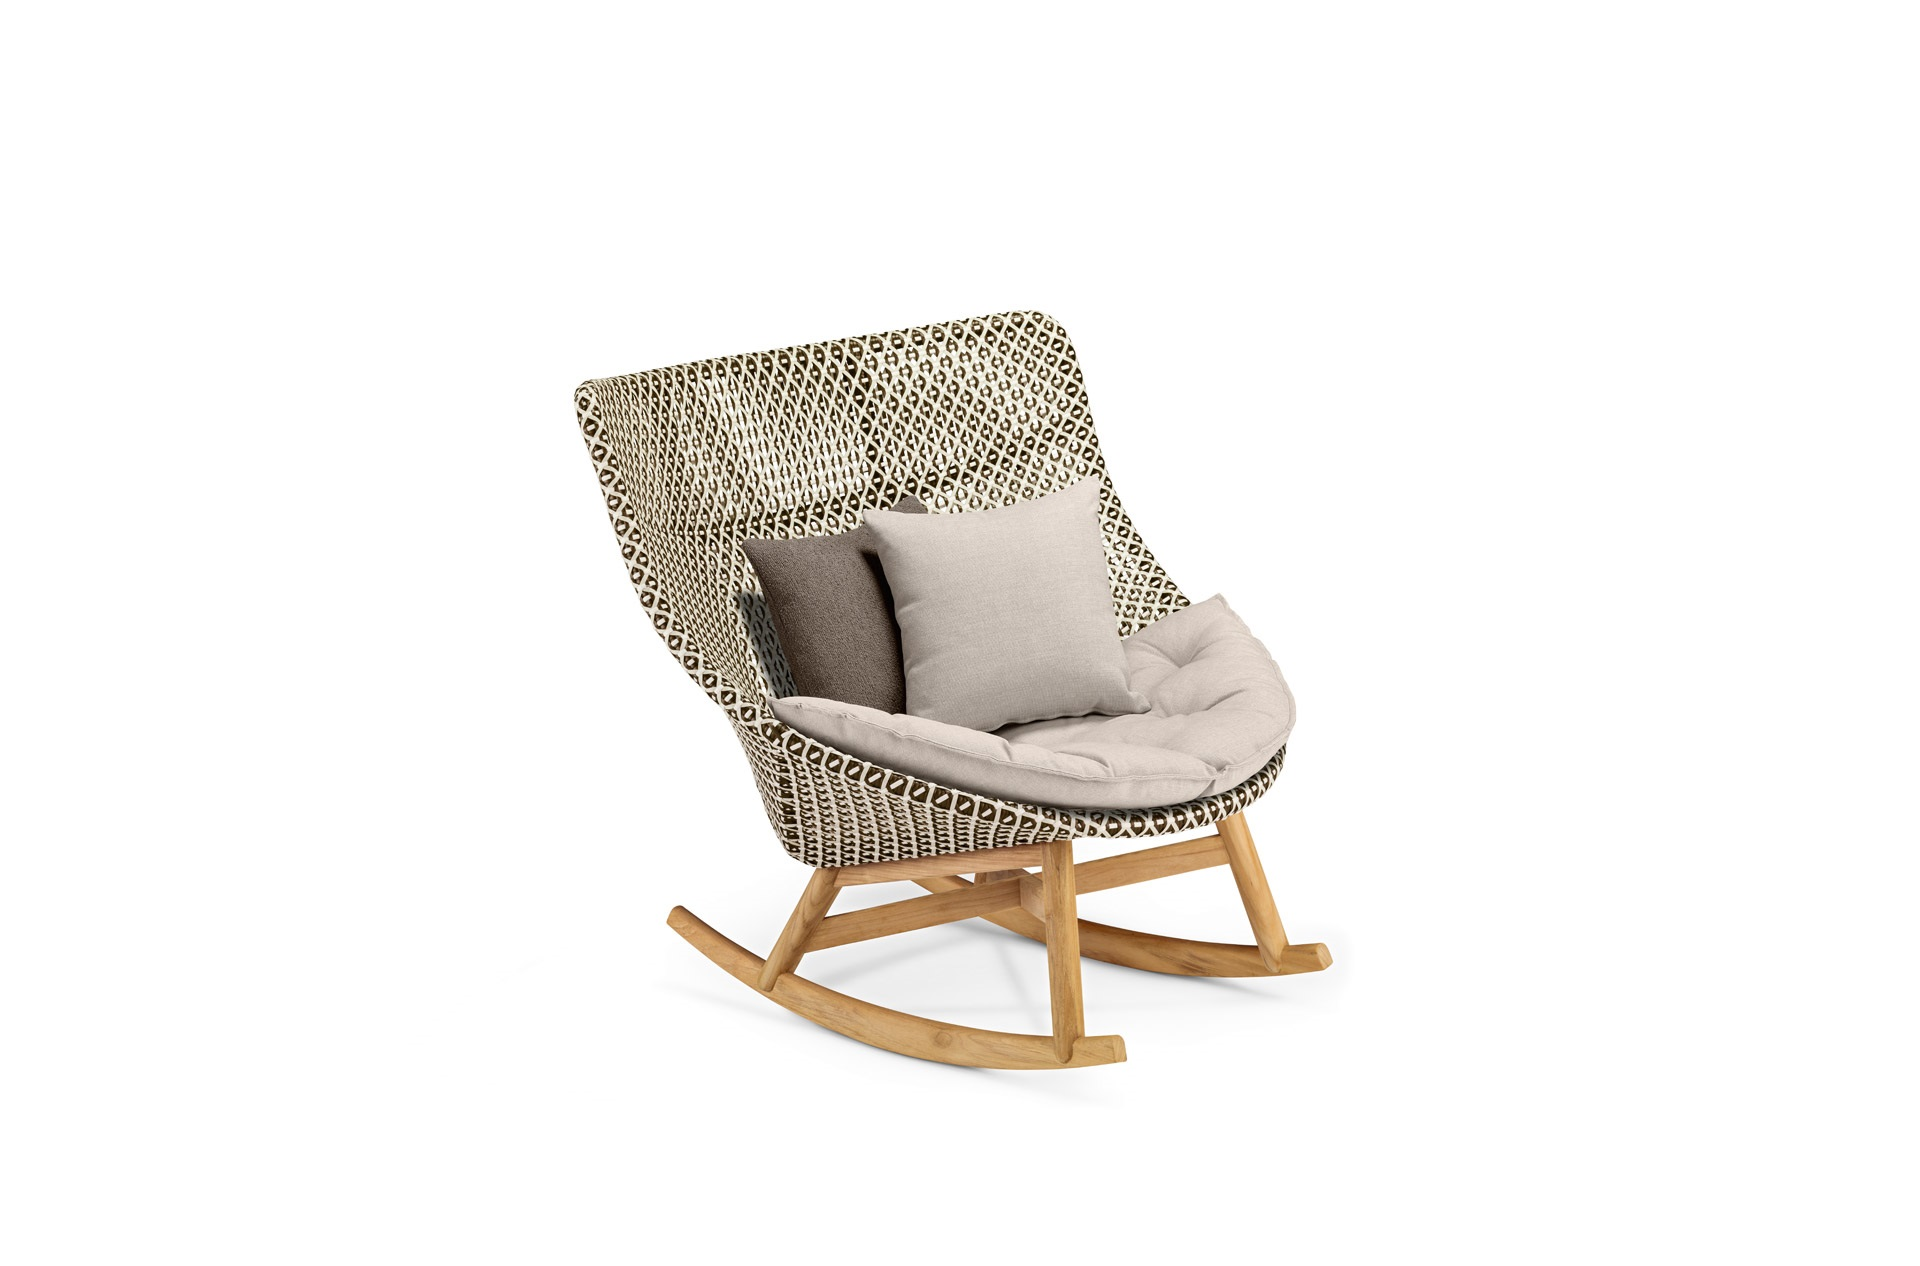 Mbrace collection dedon lounge chair wing chair rocking chair - Dedon Furniture Mbrace